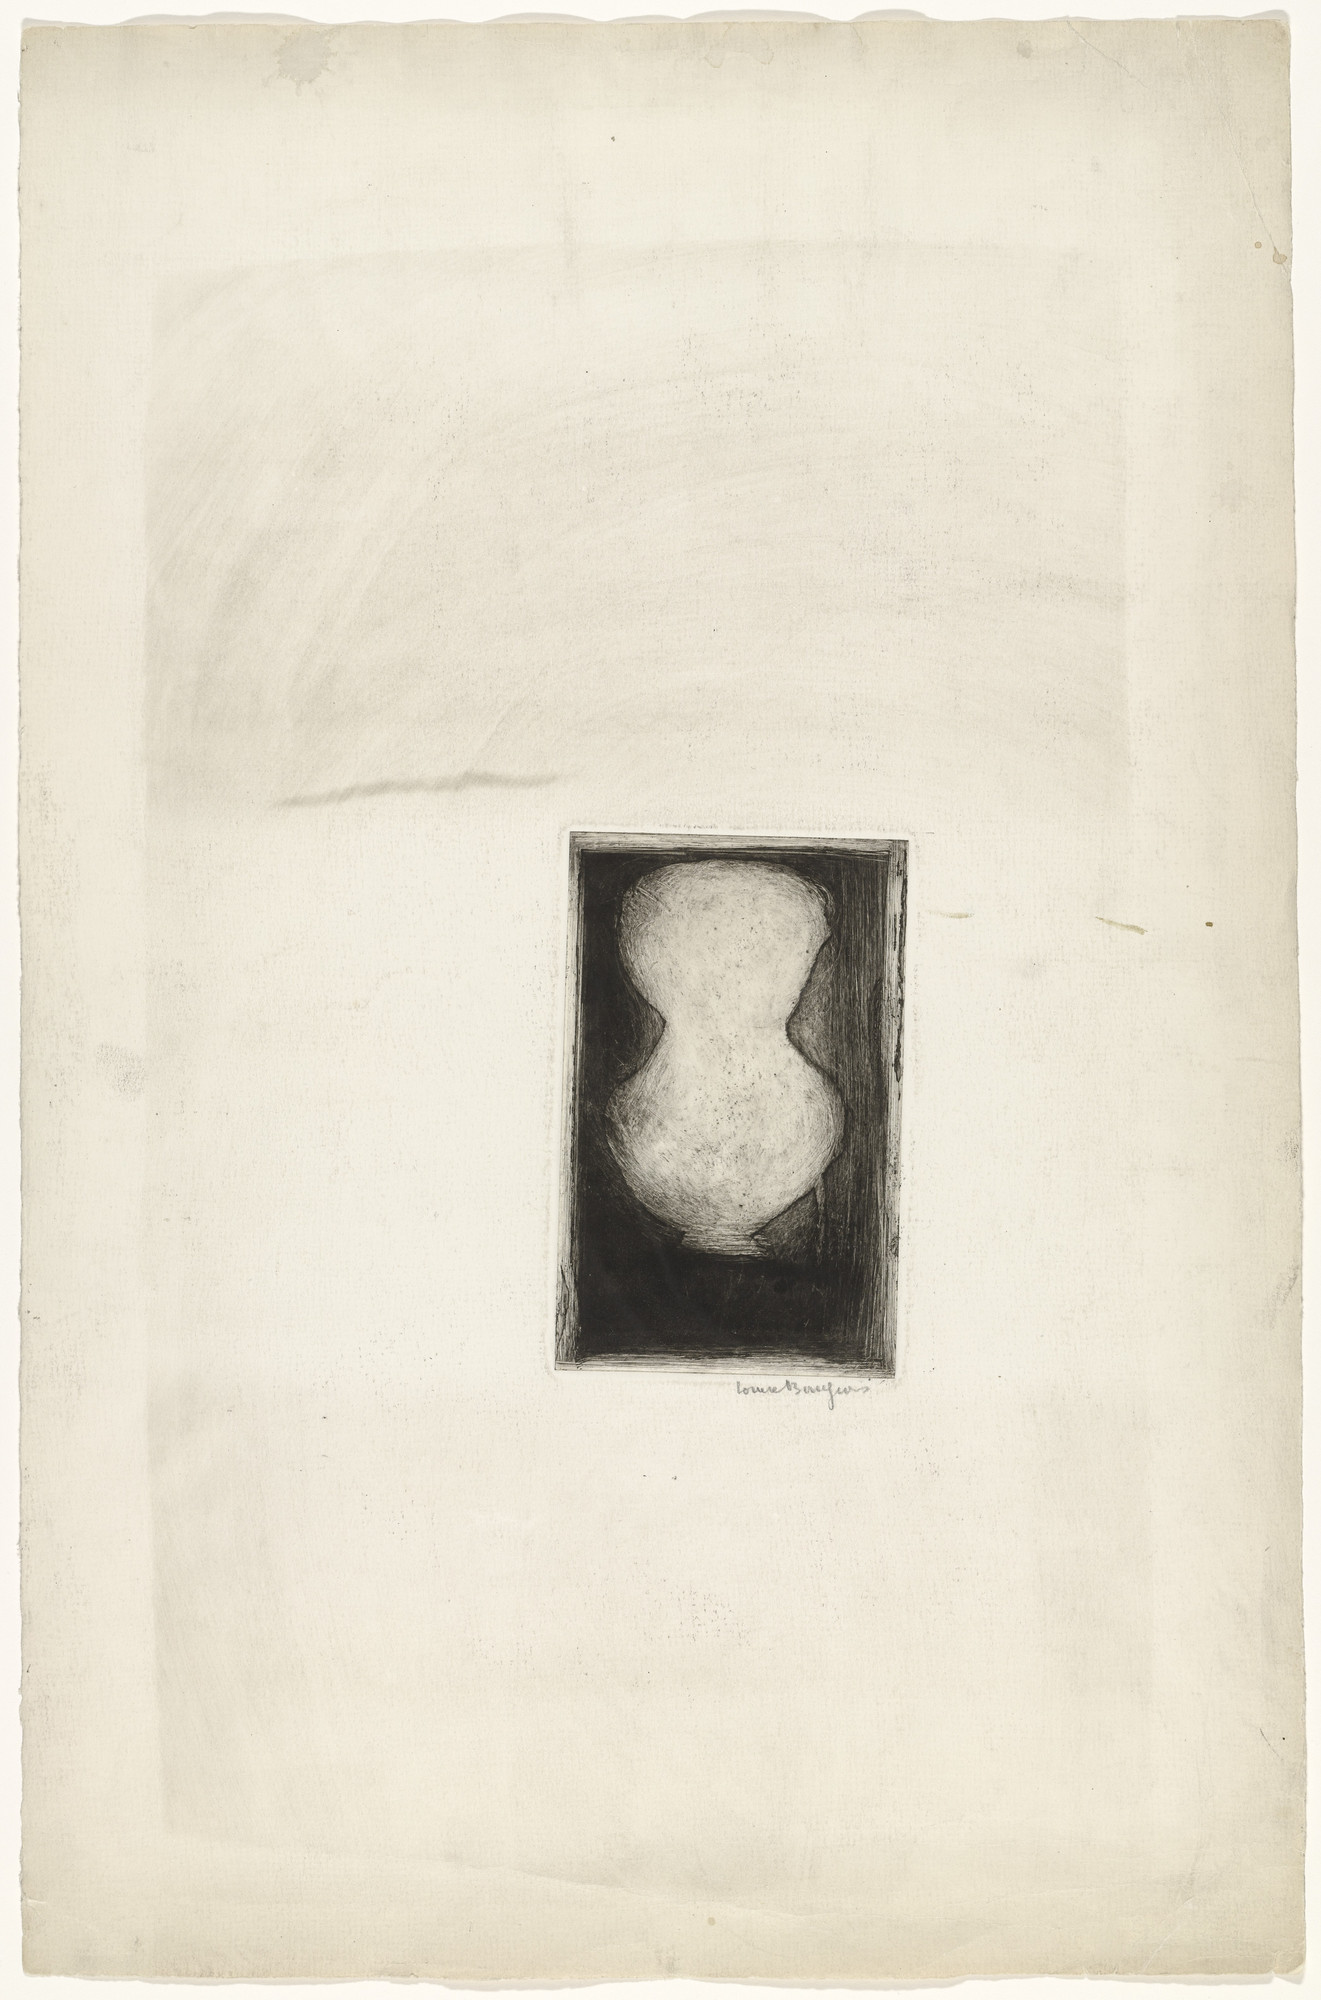 Louise Bourgeois. Vase of Tears. c. 1946